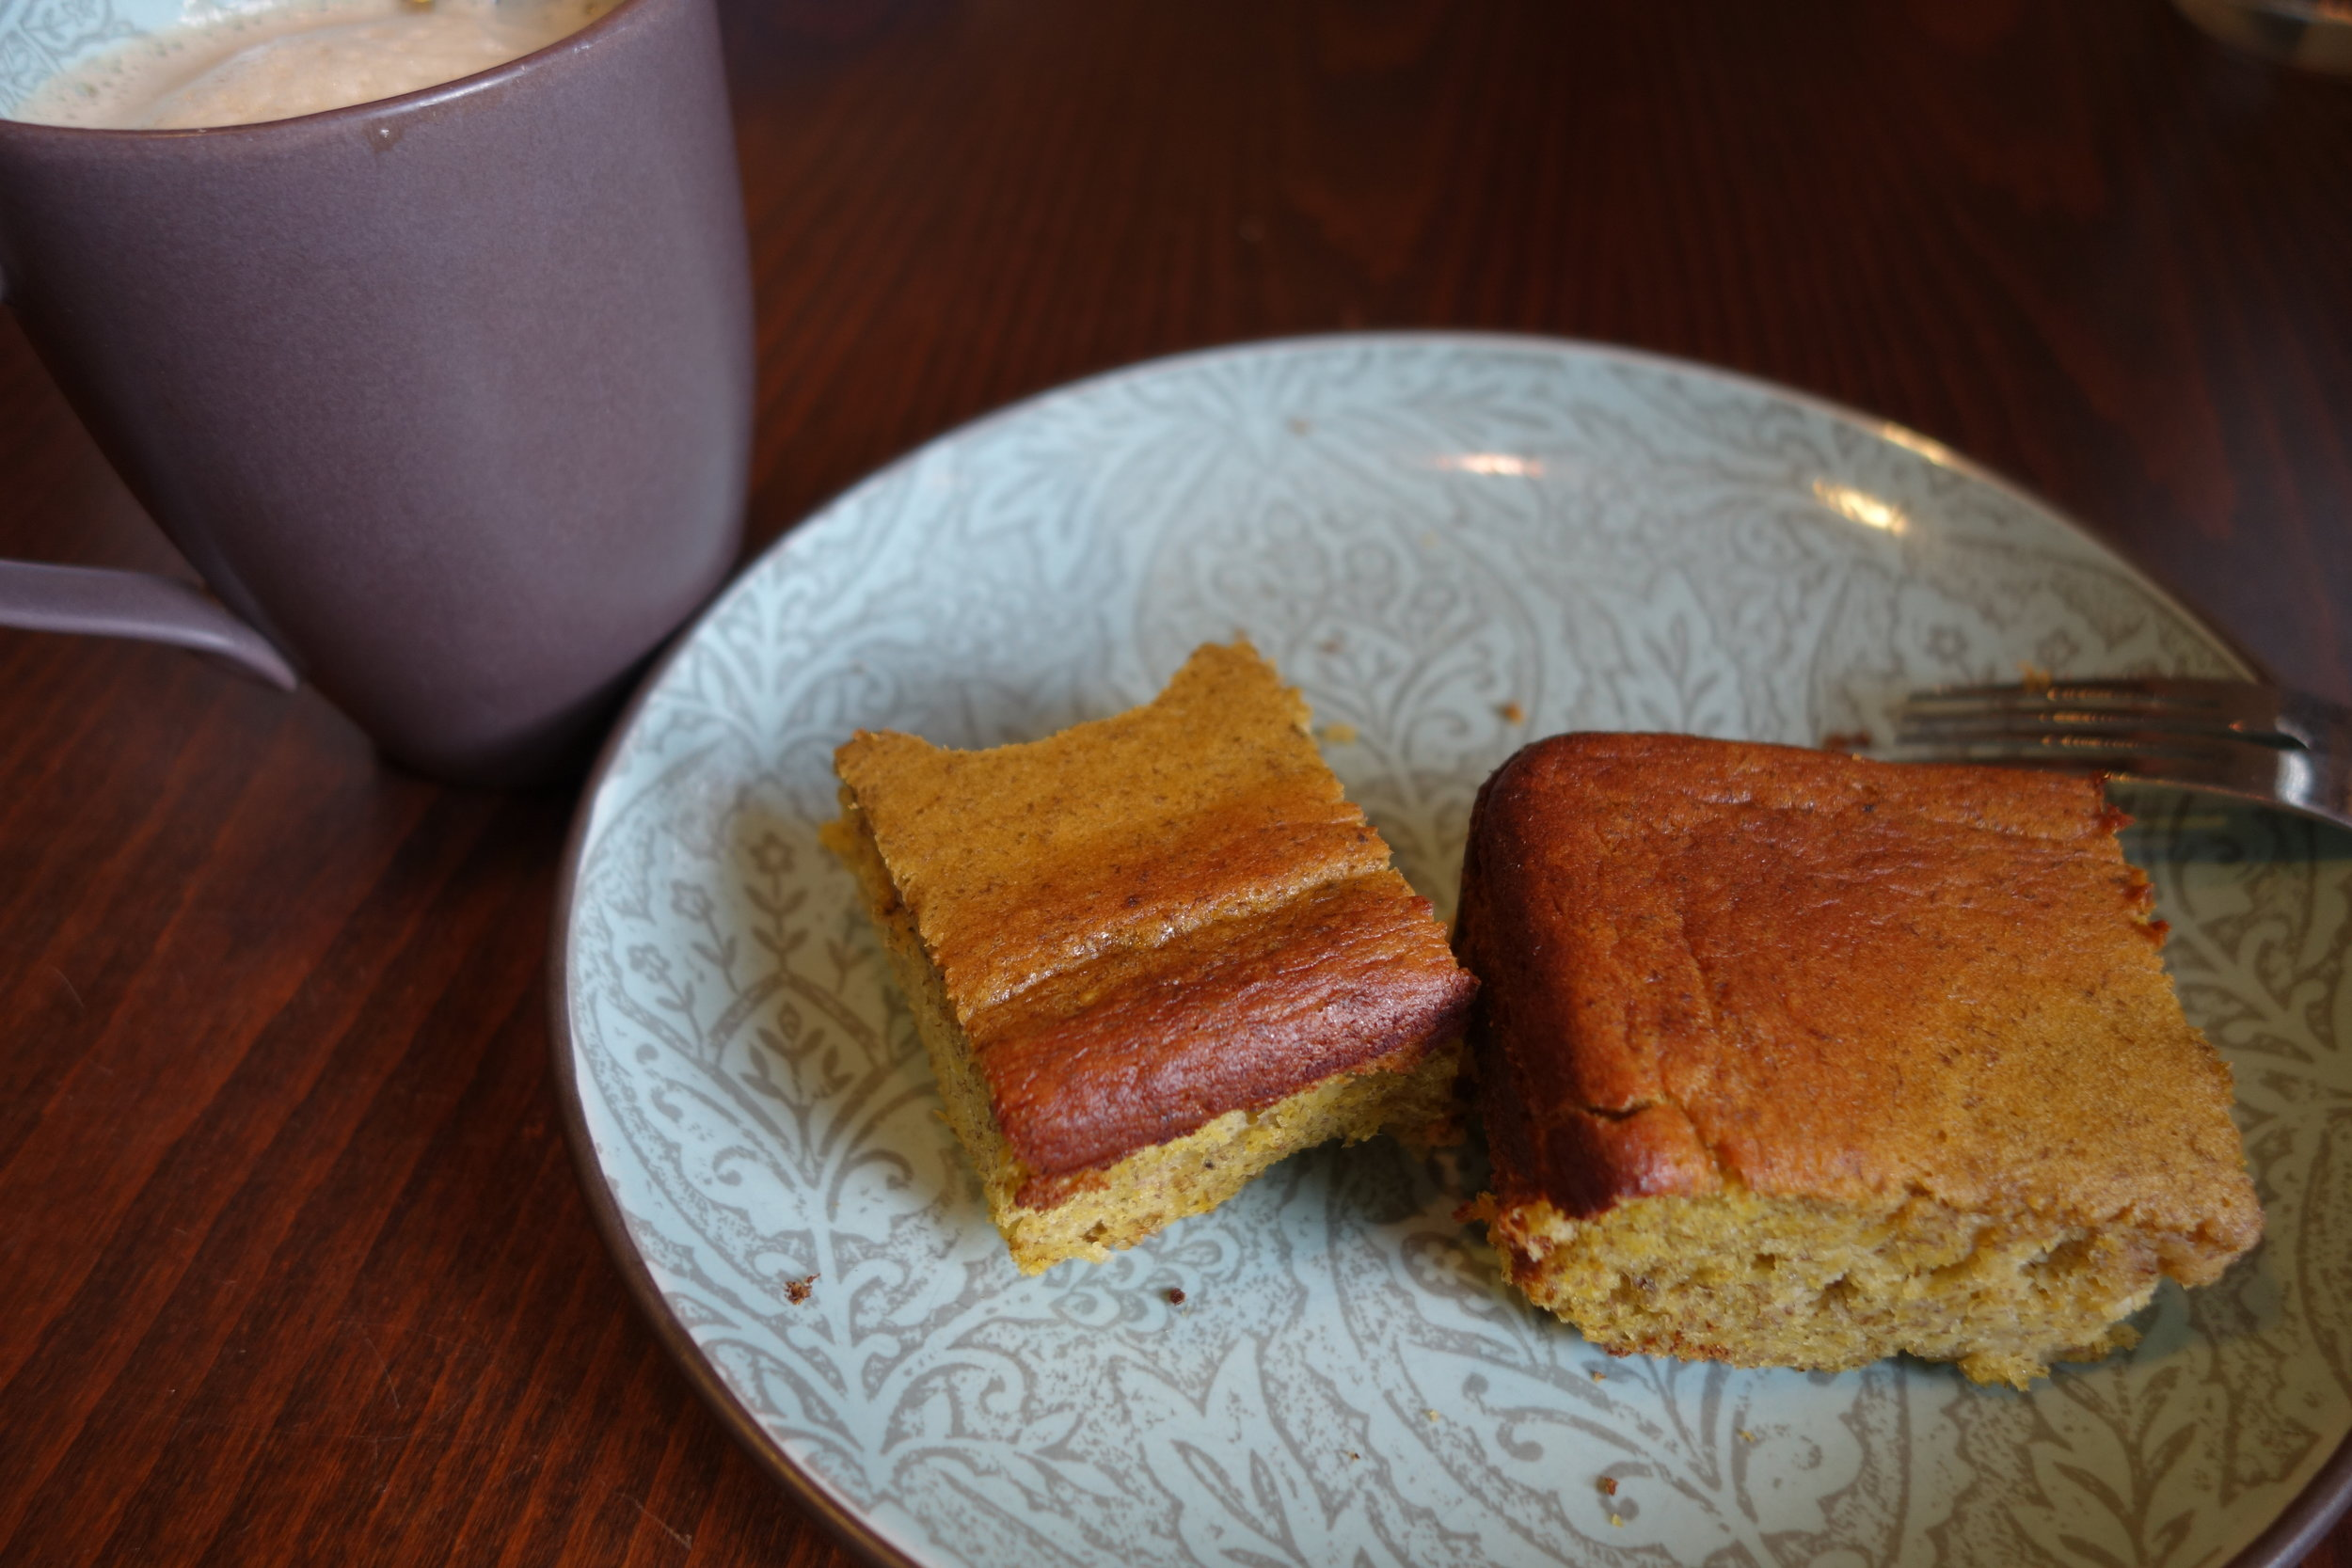 A little platano cake and a cup of coffee, a perfect breakfast in my book.